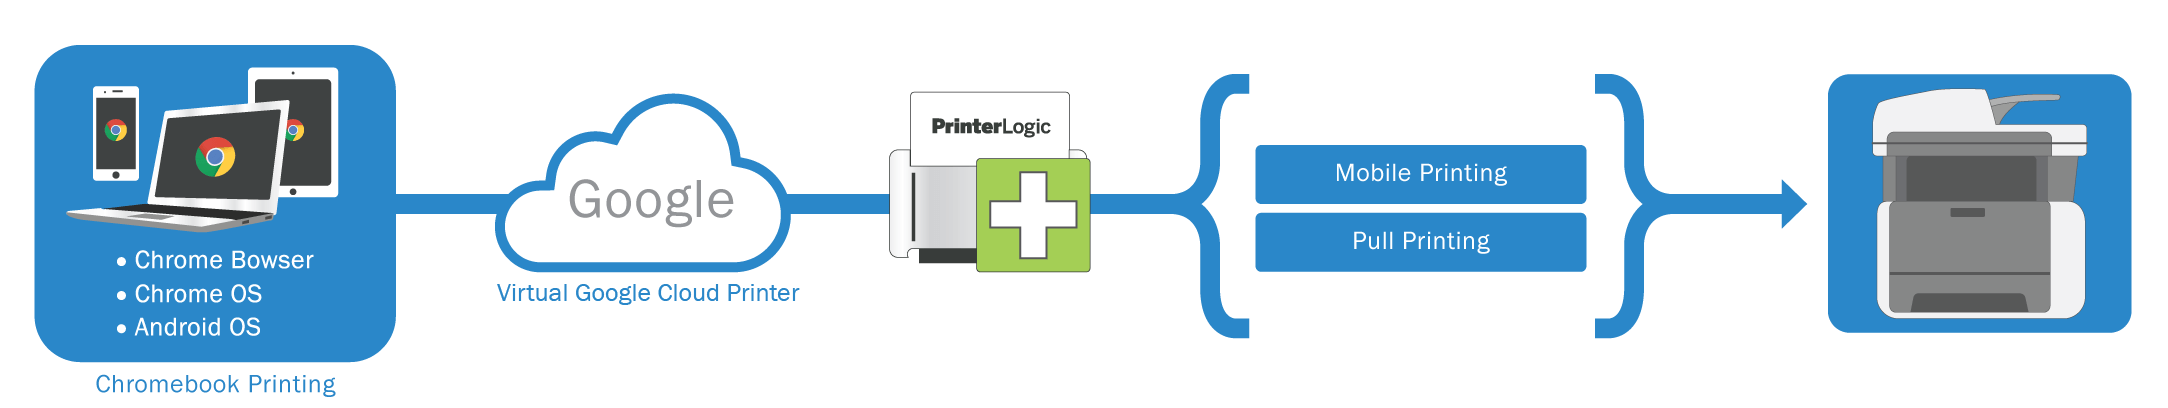 Chromebook Printing with PrinterLogic